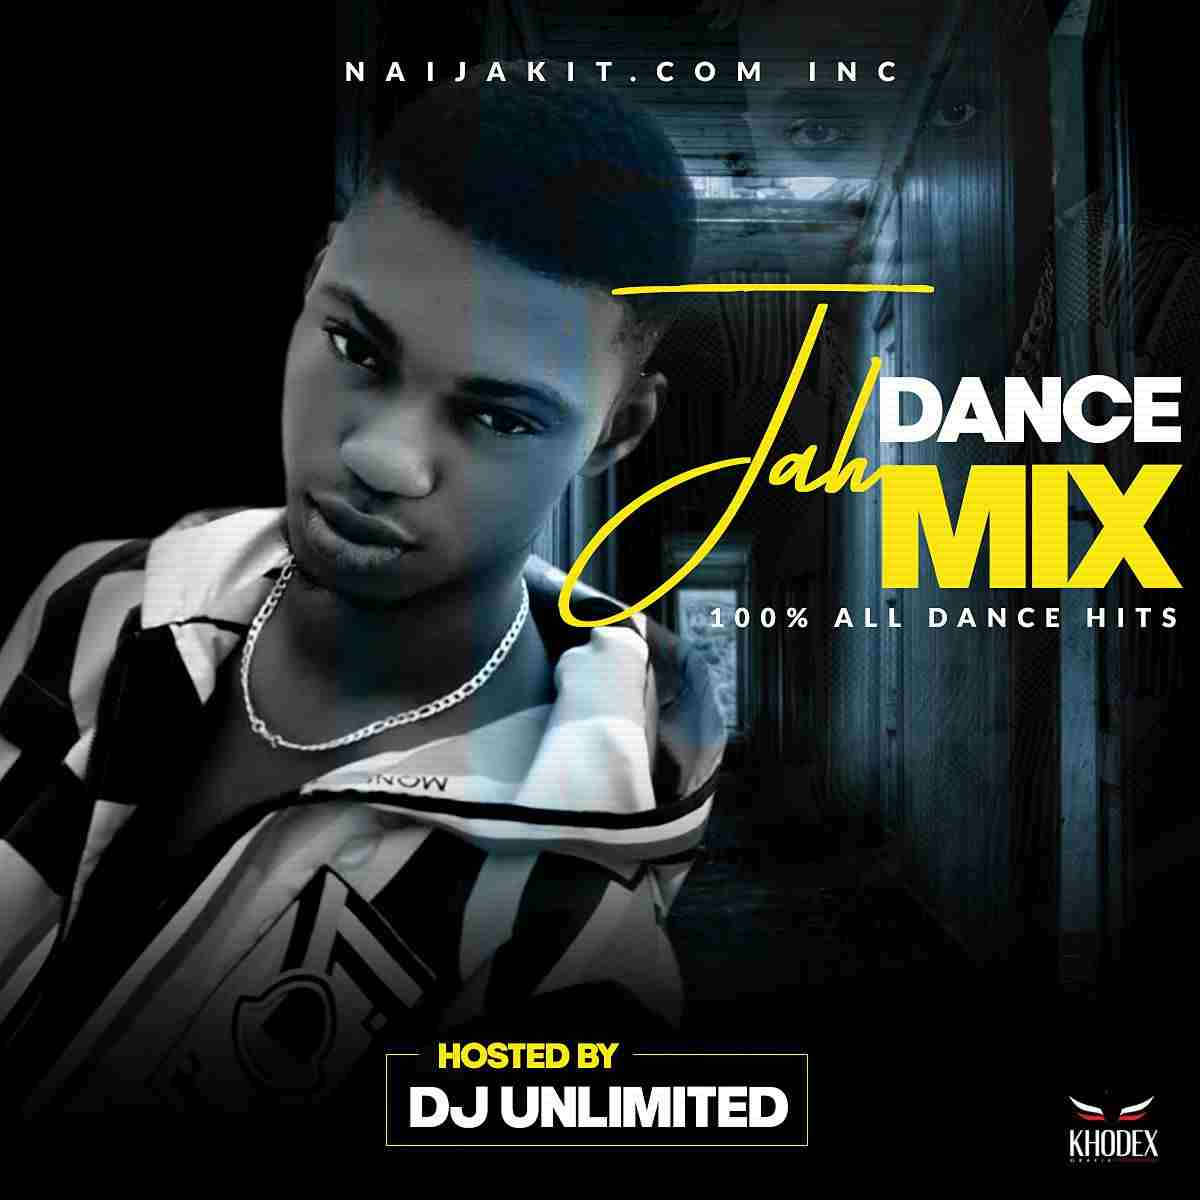 DJ Unlimited - Jah Dance Mix